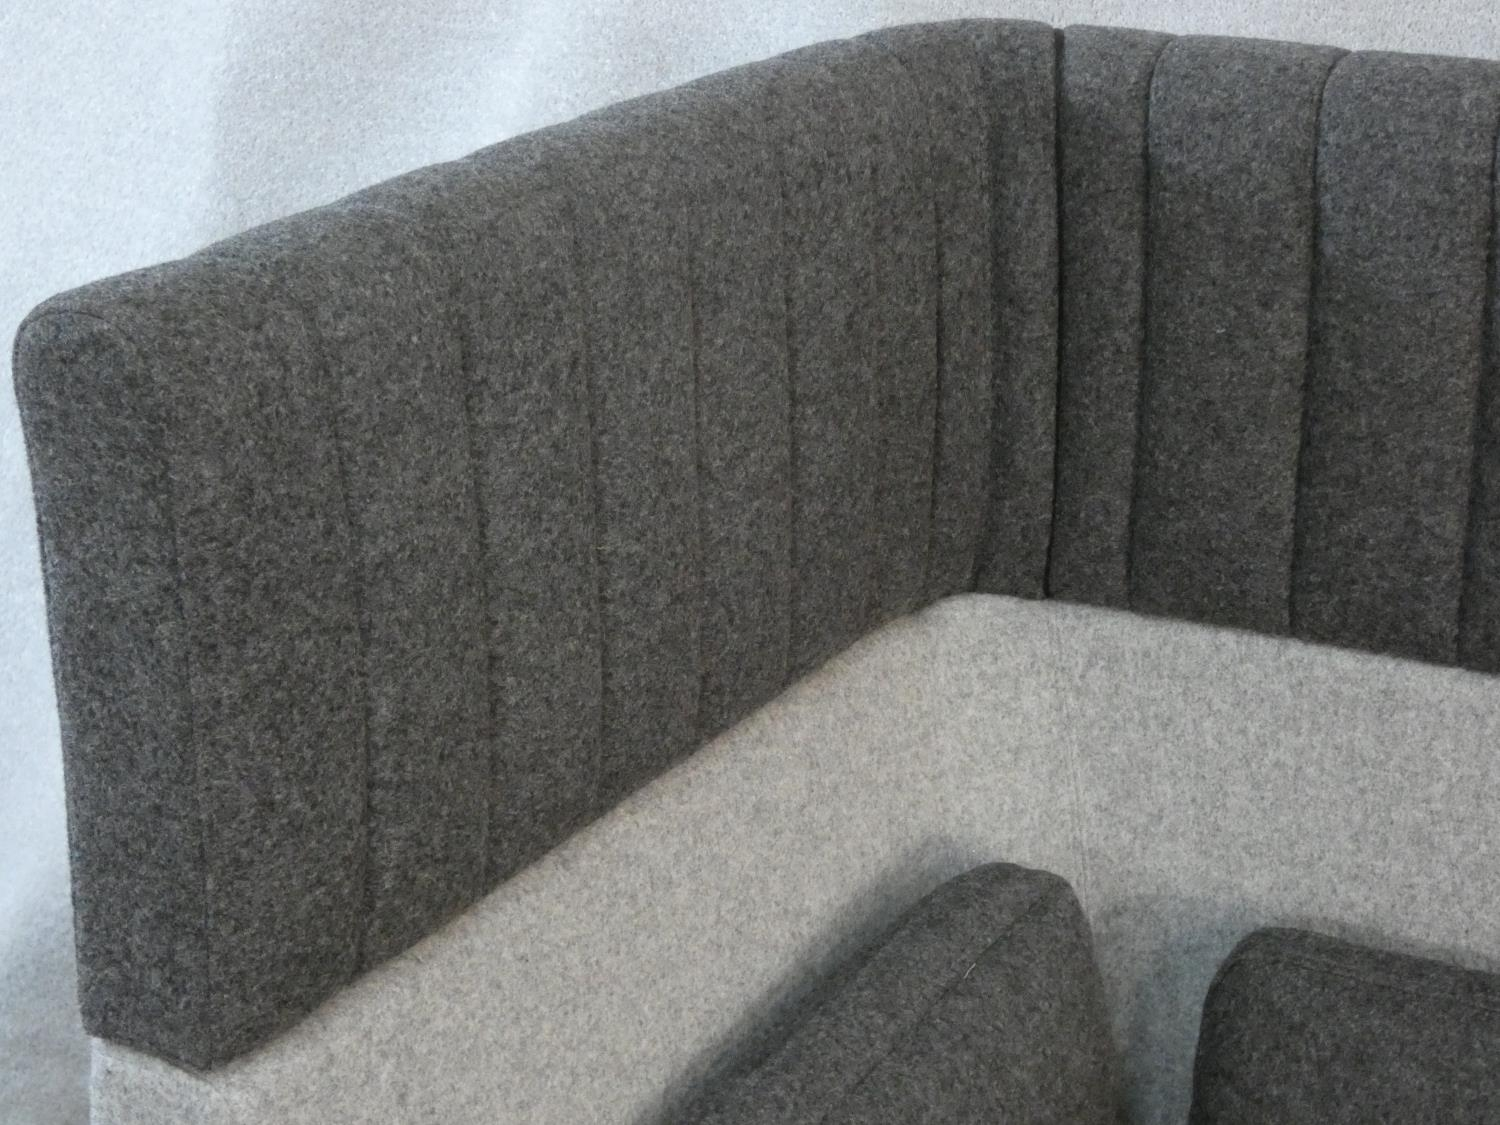 Mark Gabbertas for Allermuir, a Haven sofa in two tones of grey. H.118xW.200xD.81cm - Image 7 of 10